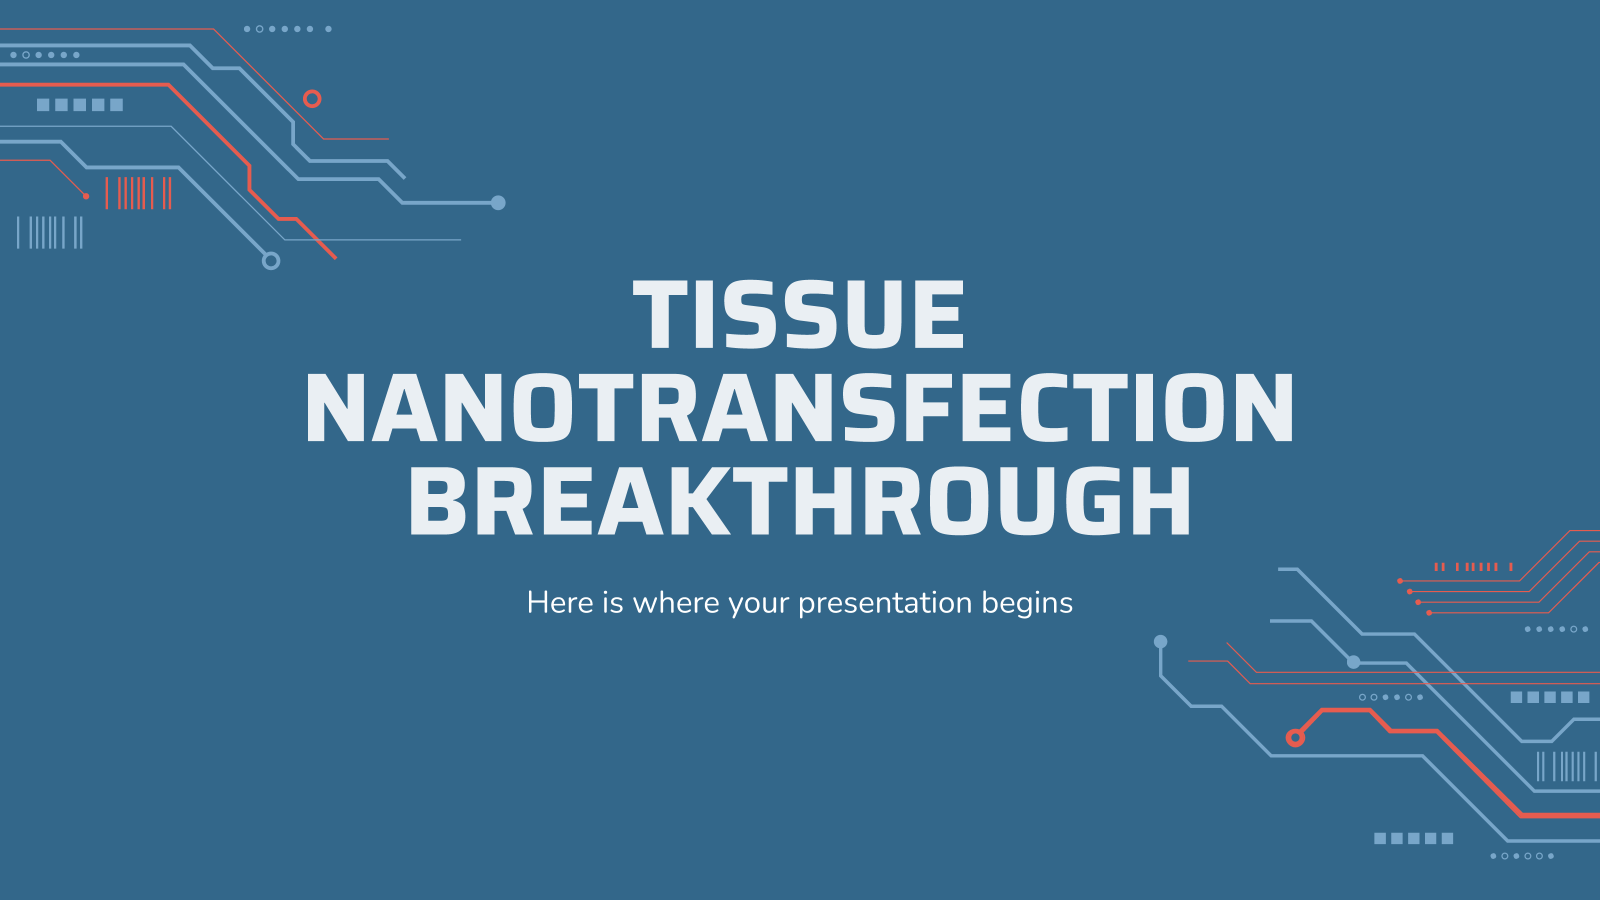 Tissue Nanotransfection Breakthrough presentation template